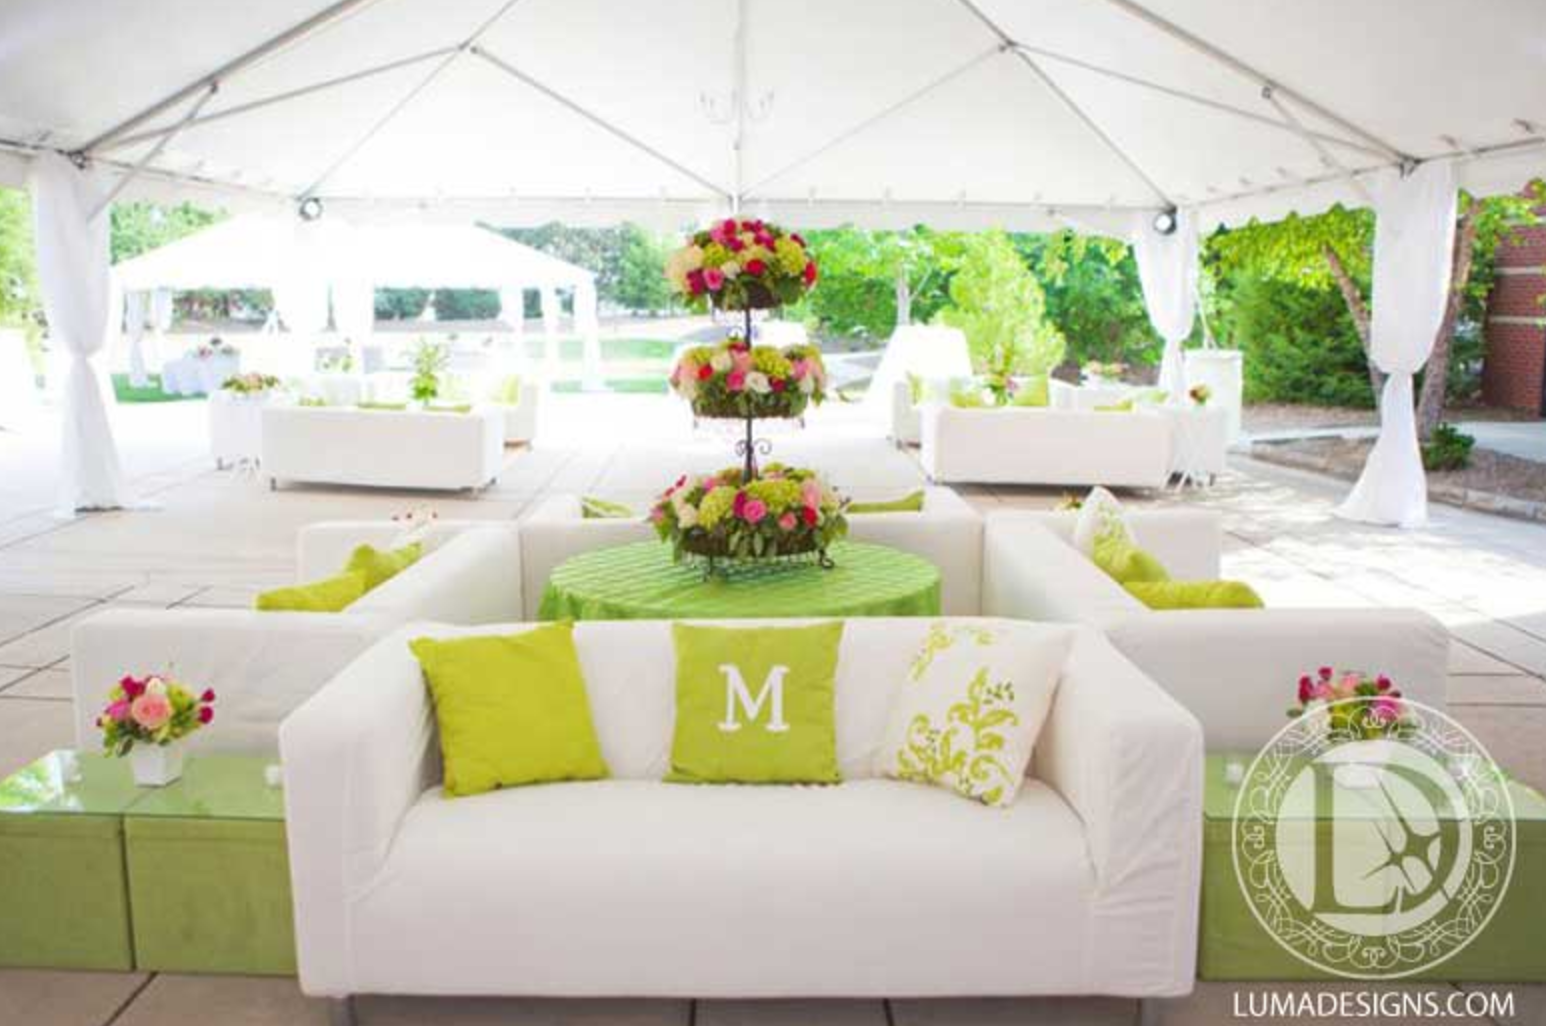 Luma Designs designed this space for the ultimately perfect spring wedding with touches of green against the white. Click the image to learn more. Photo credit: Luma Designs webpage